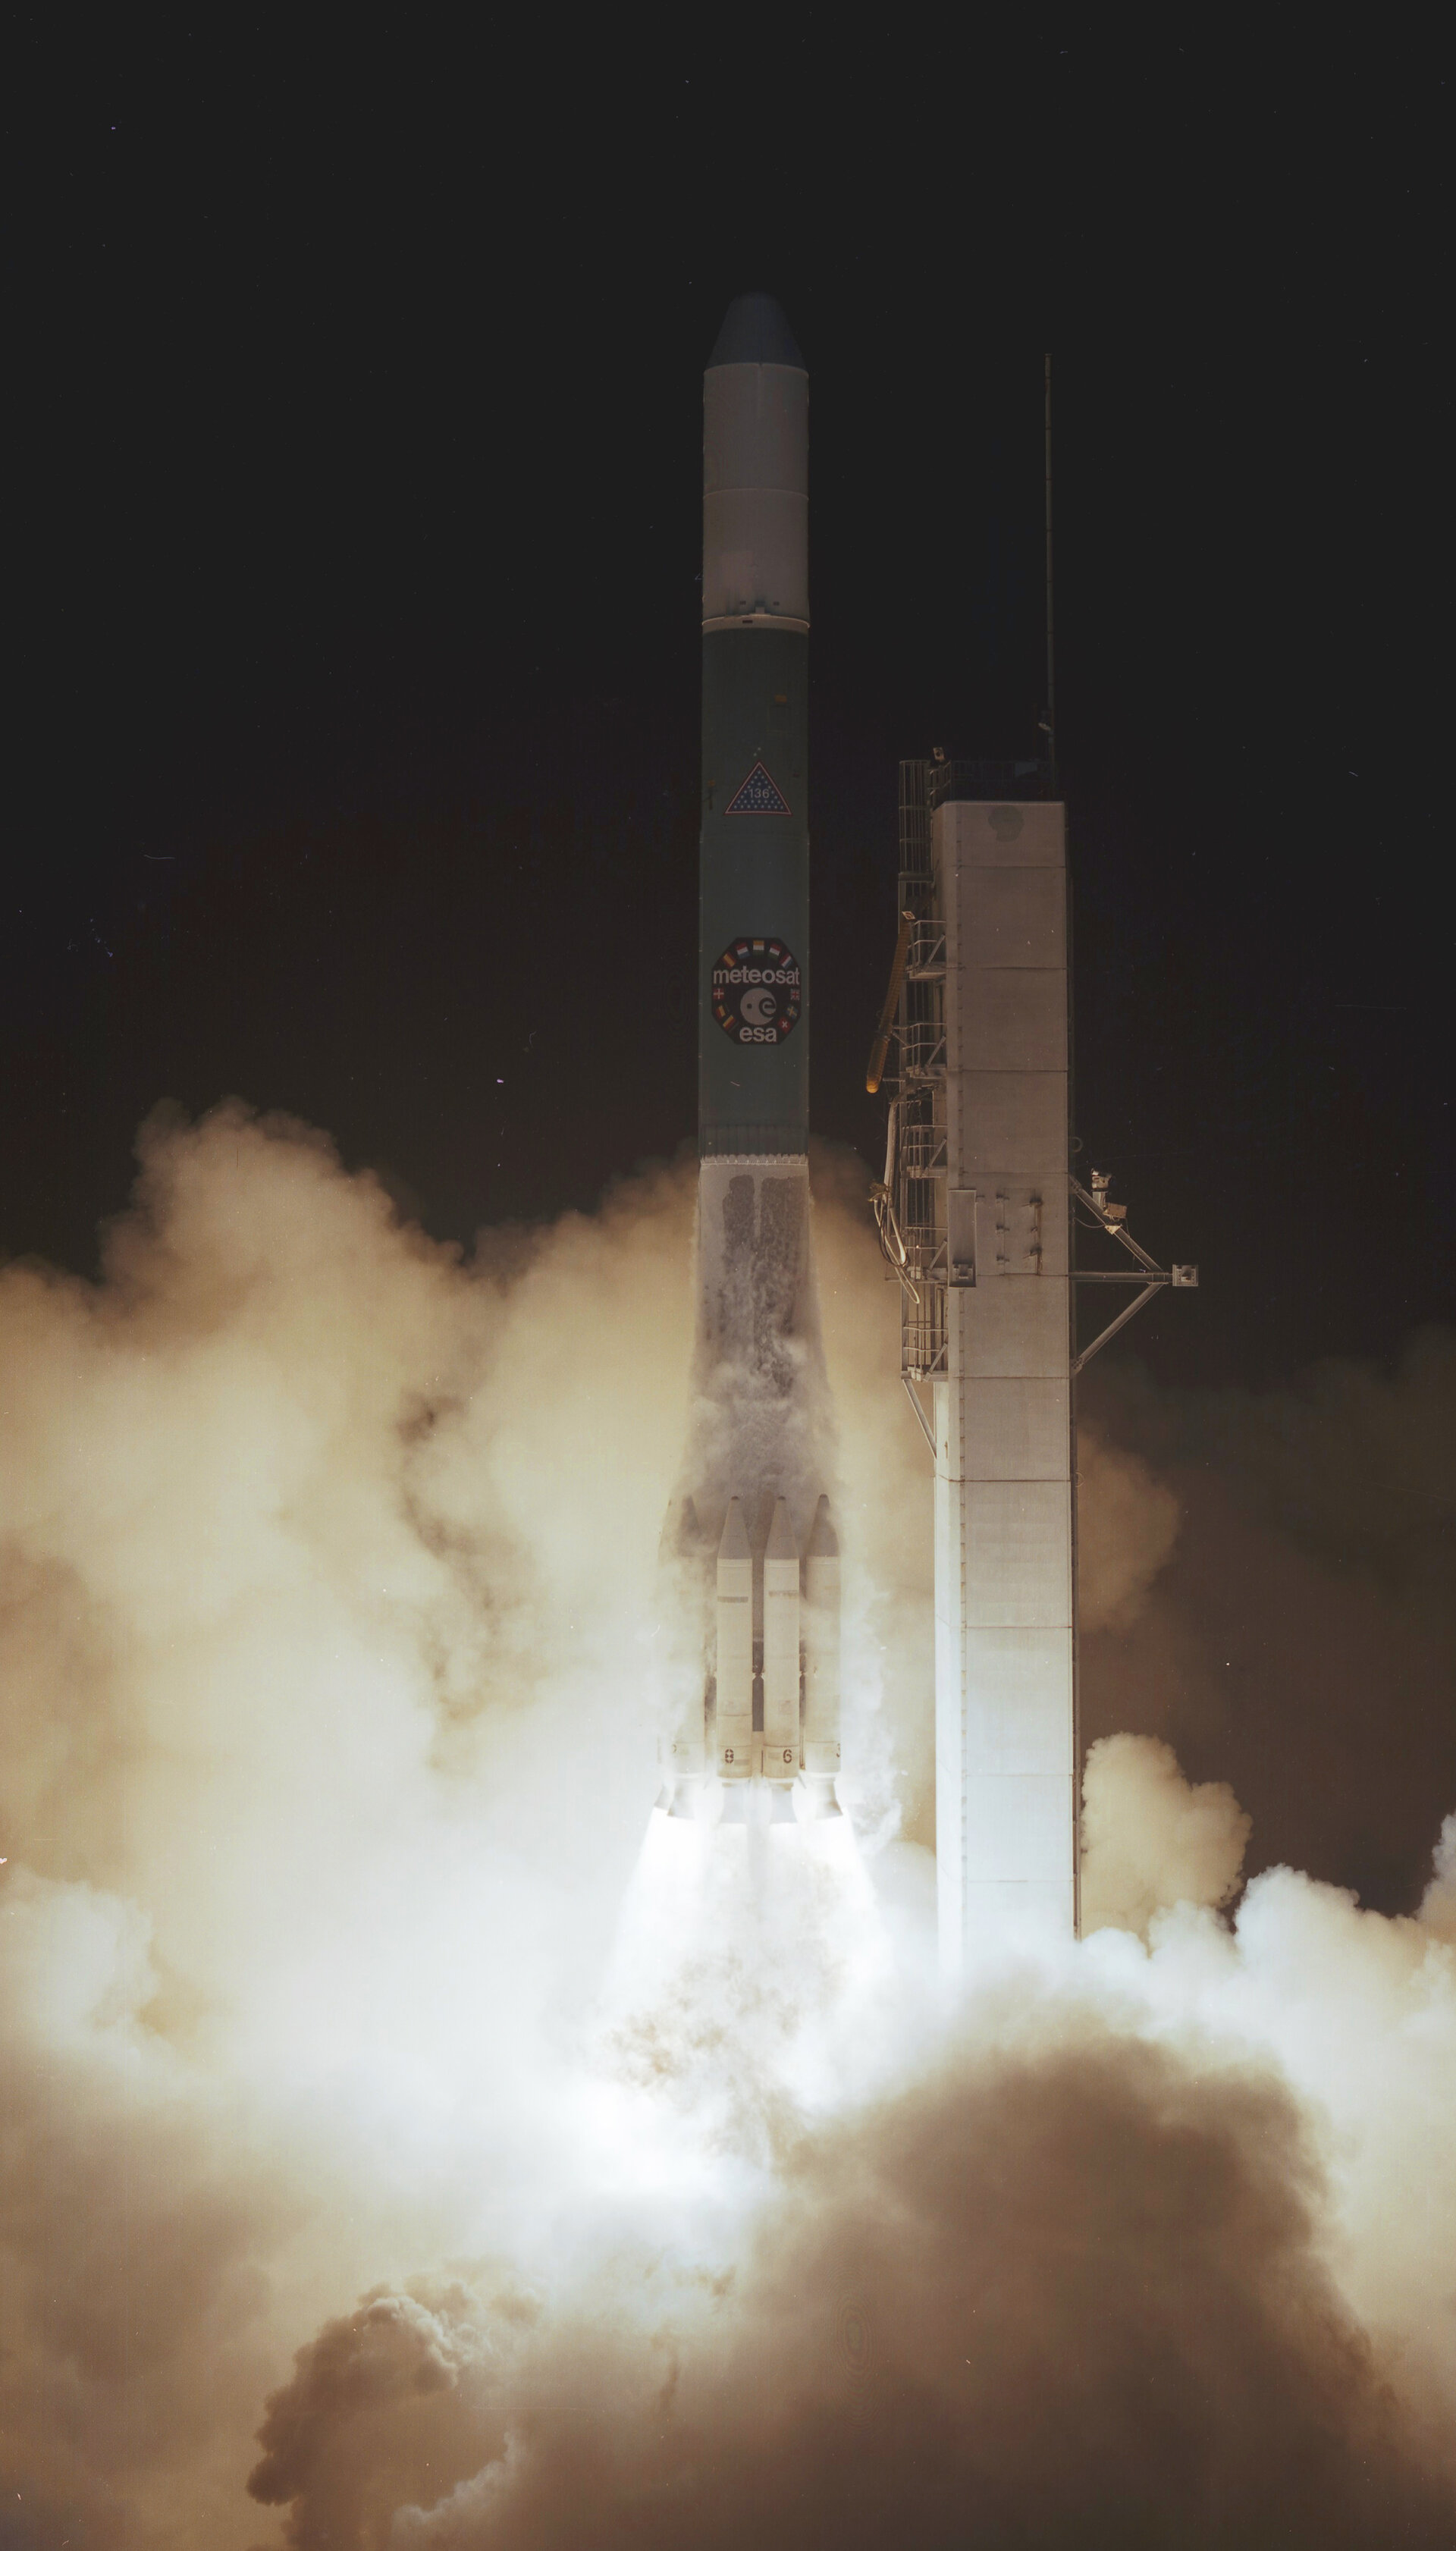 Meteosat-1 launch